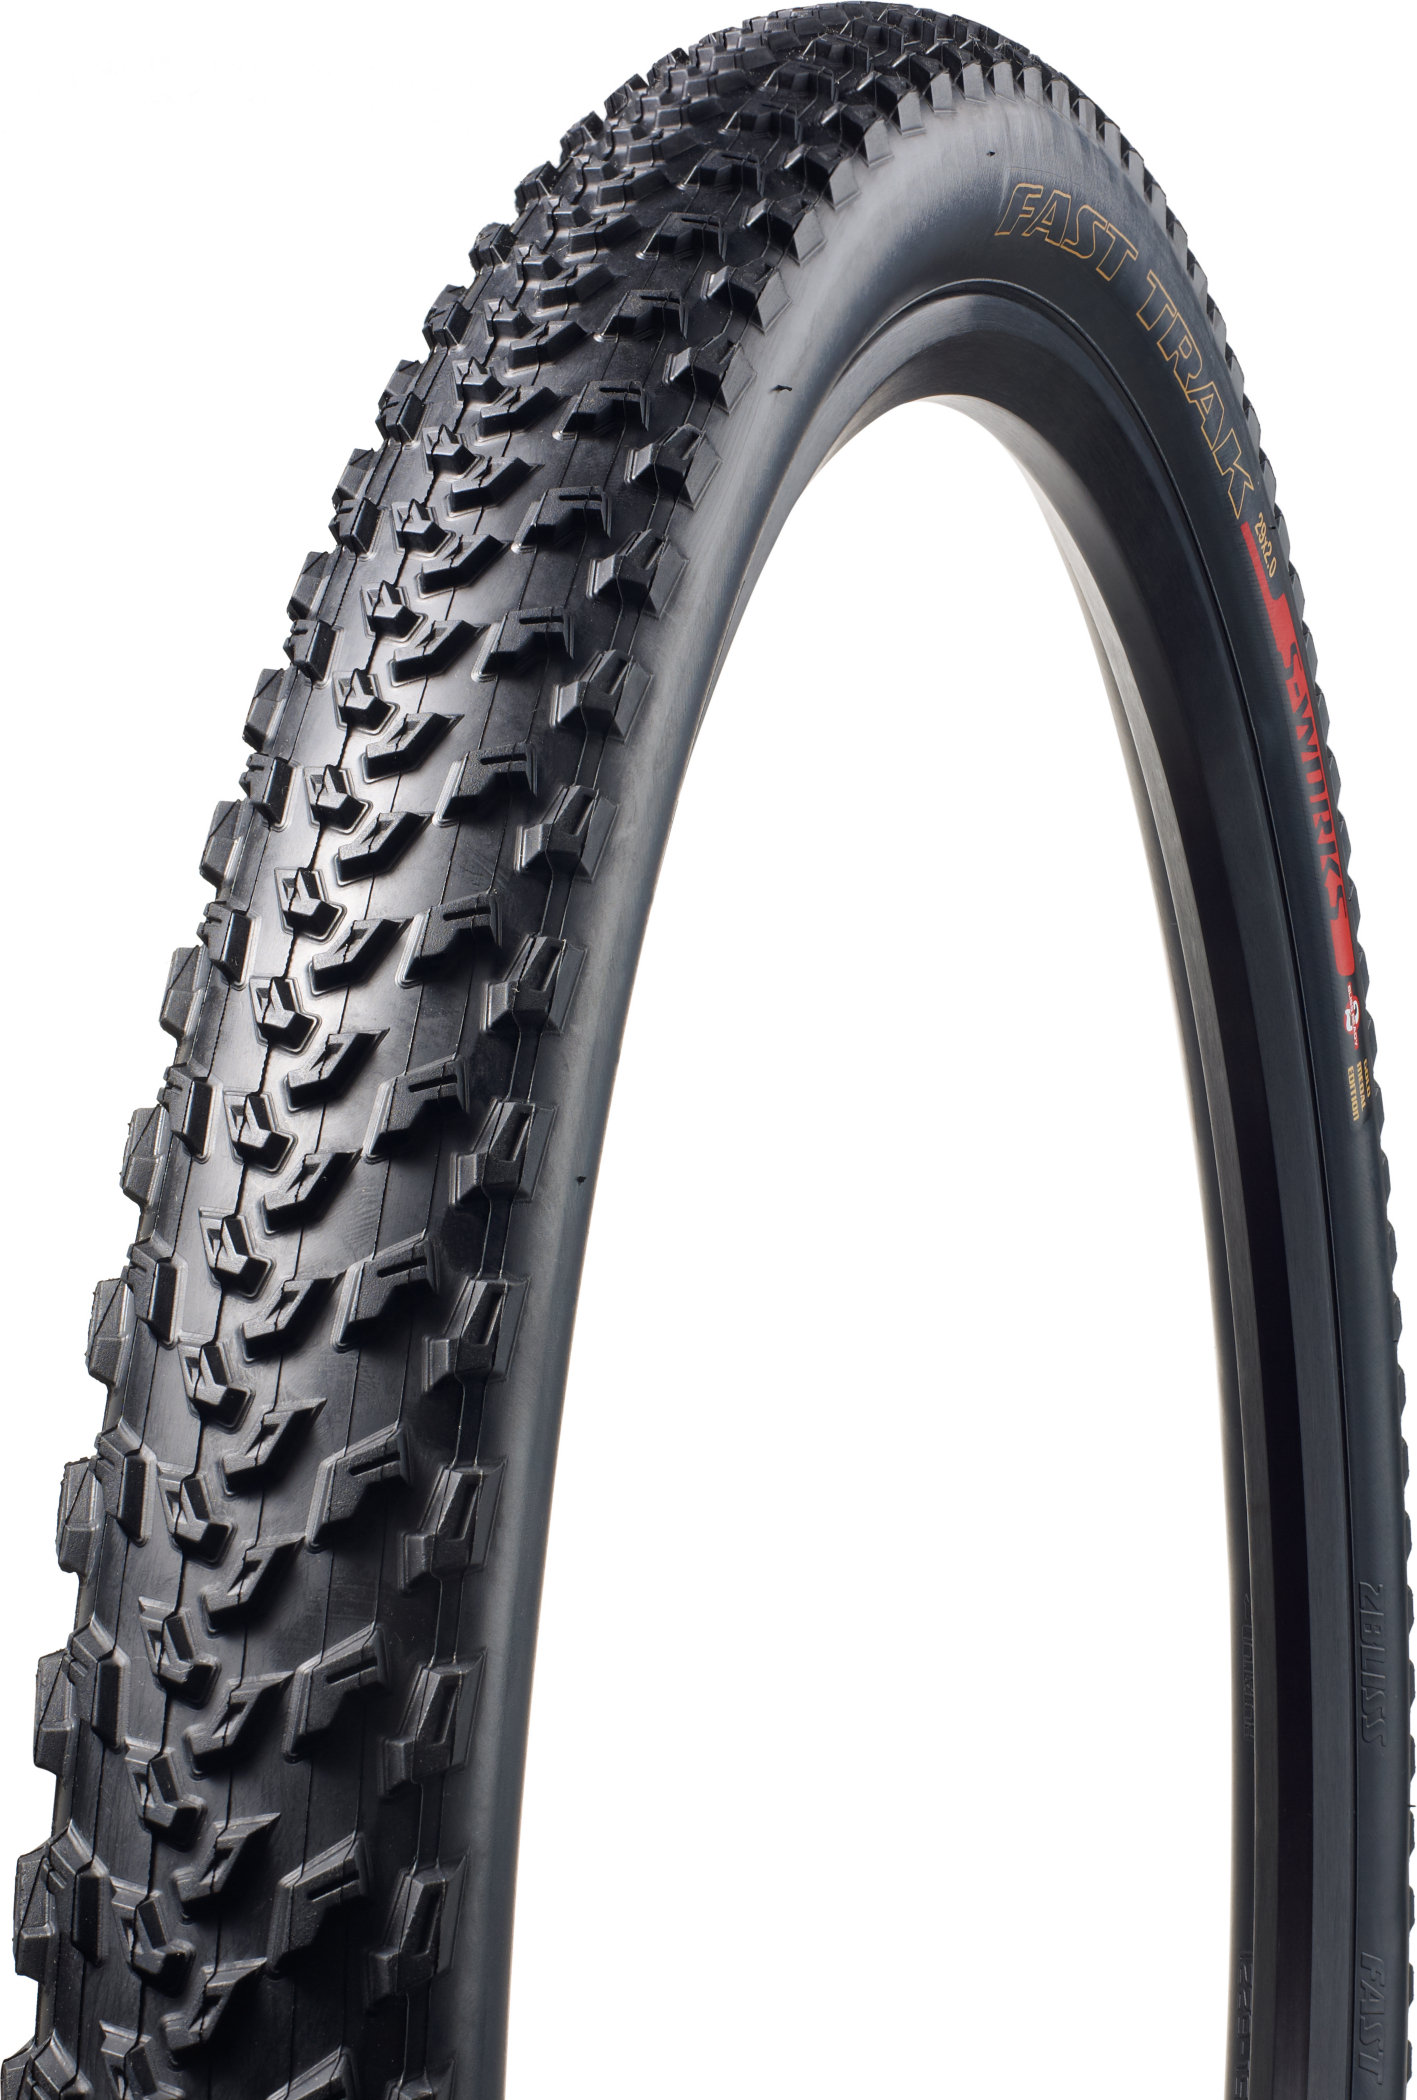 SPECIALIZED FAST TRAK ARM TIRE 26X2.0 - SPECIALIZED FAST TRAK ARM TIRE 26X2.0